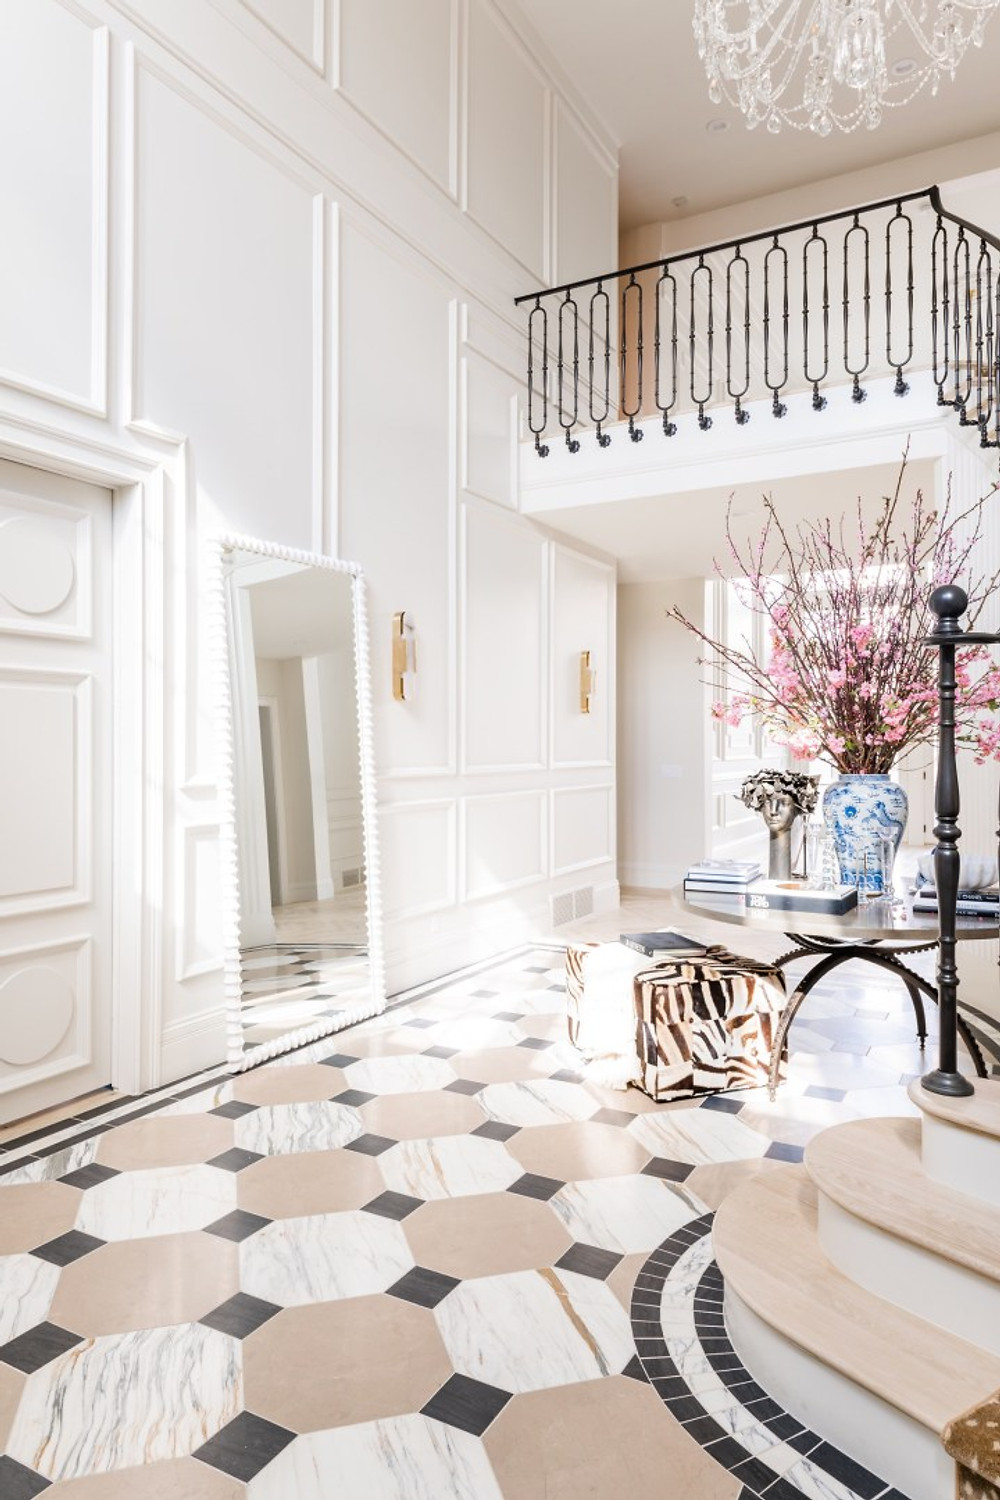 Rachel-Parcell-Entry-Way-Reveal-Alice-Lane-Home-Decor-6-1